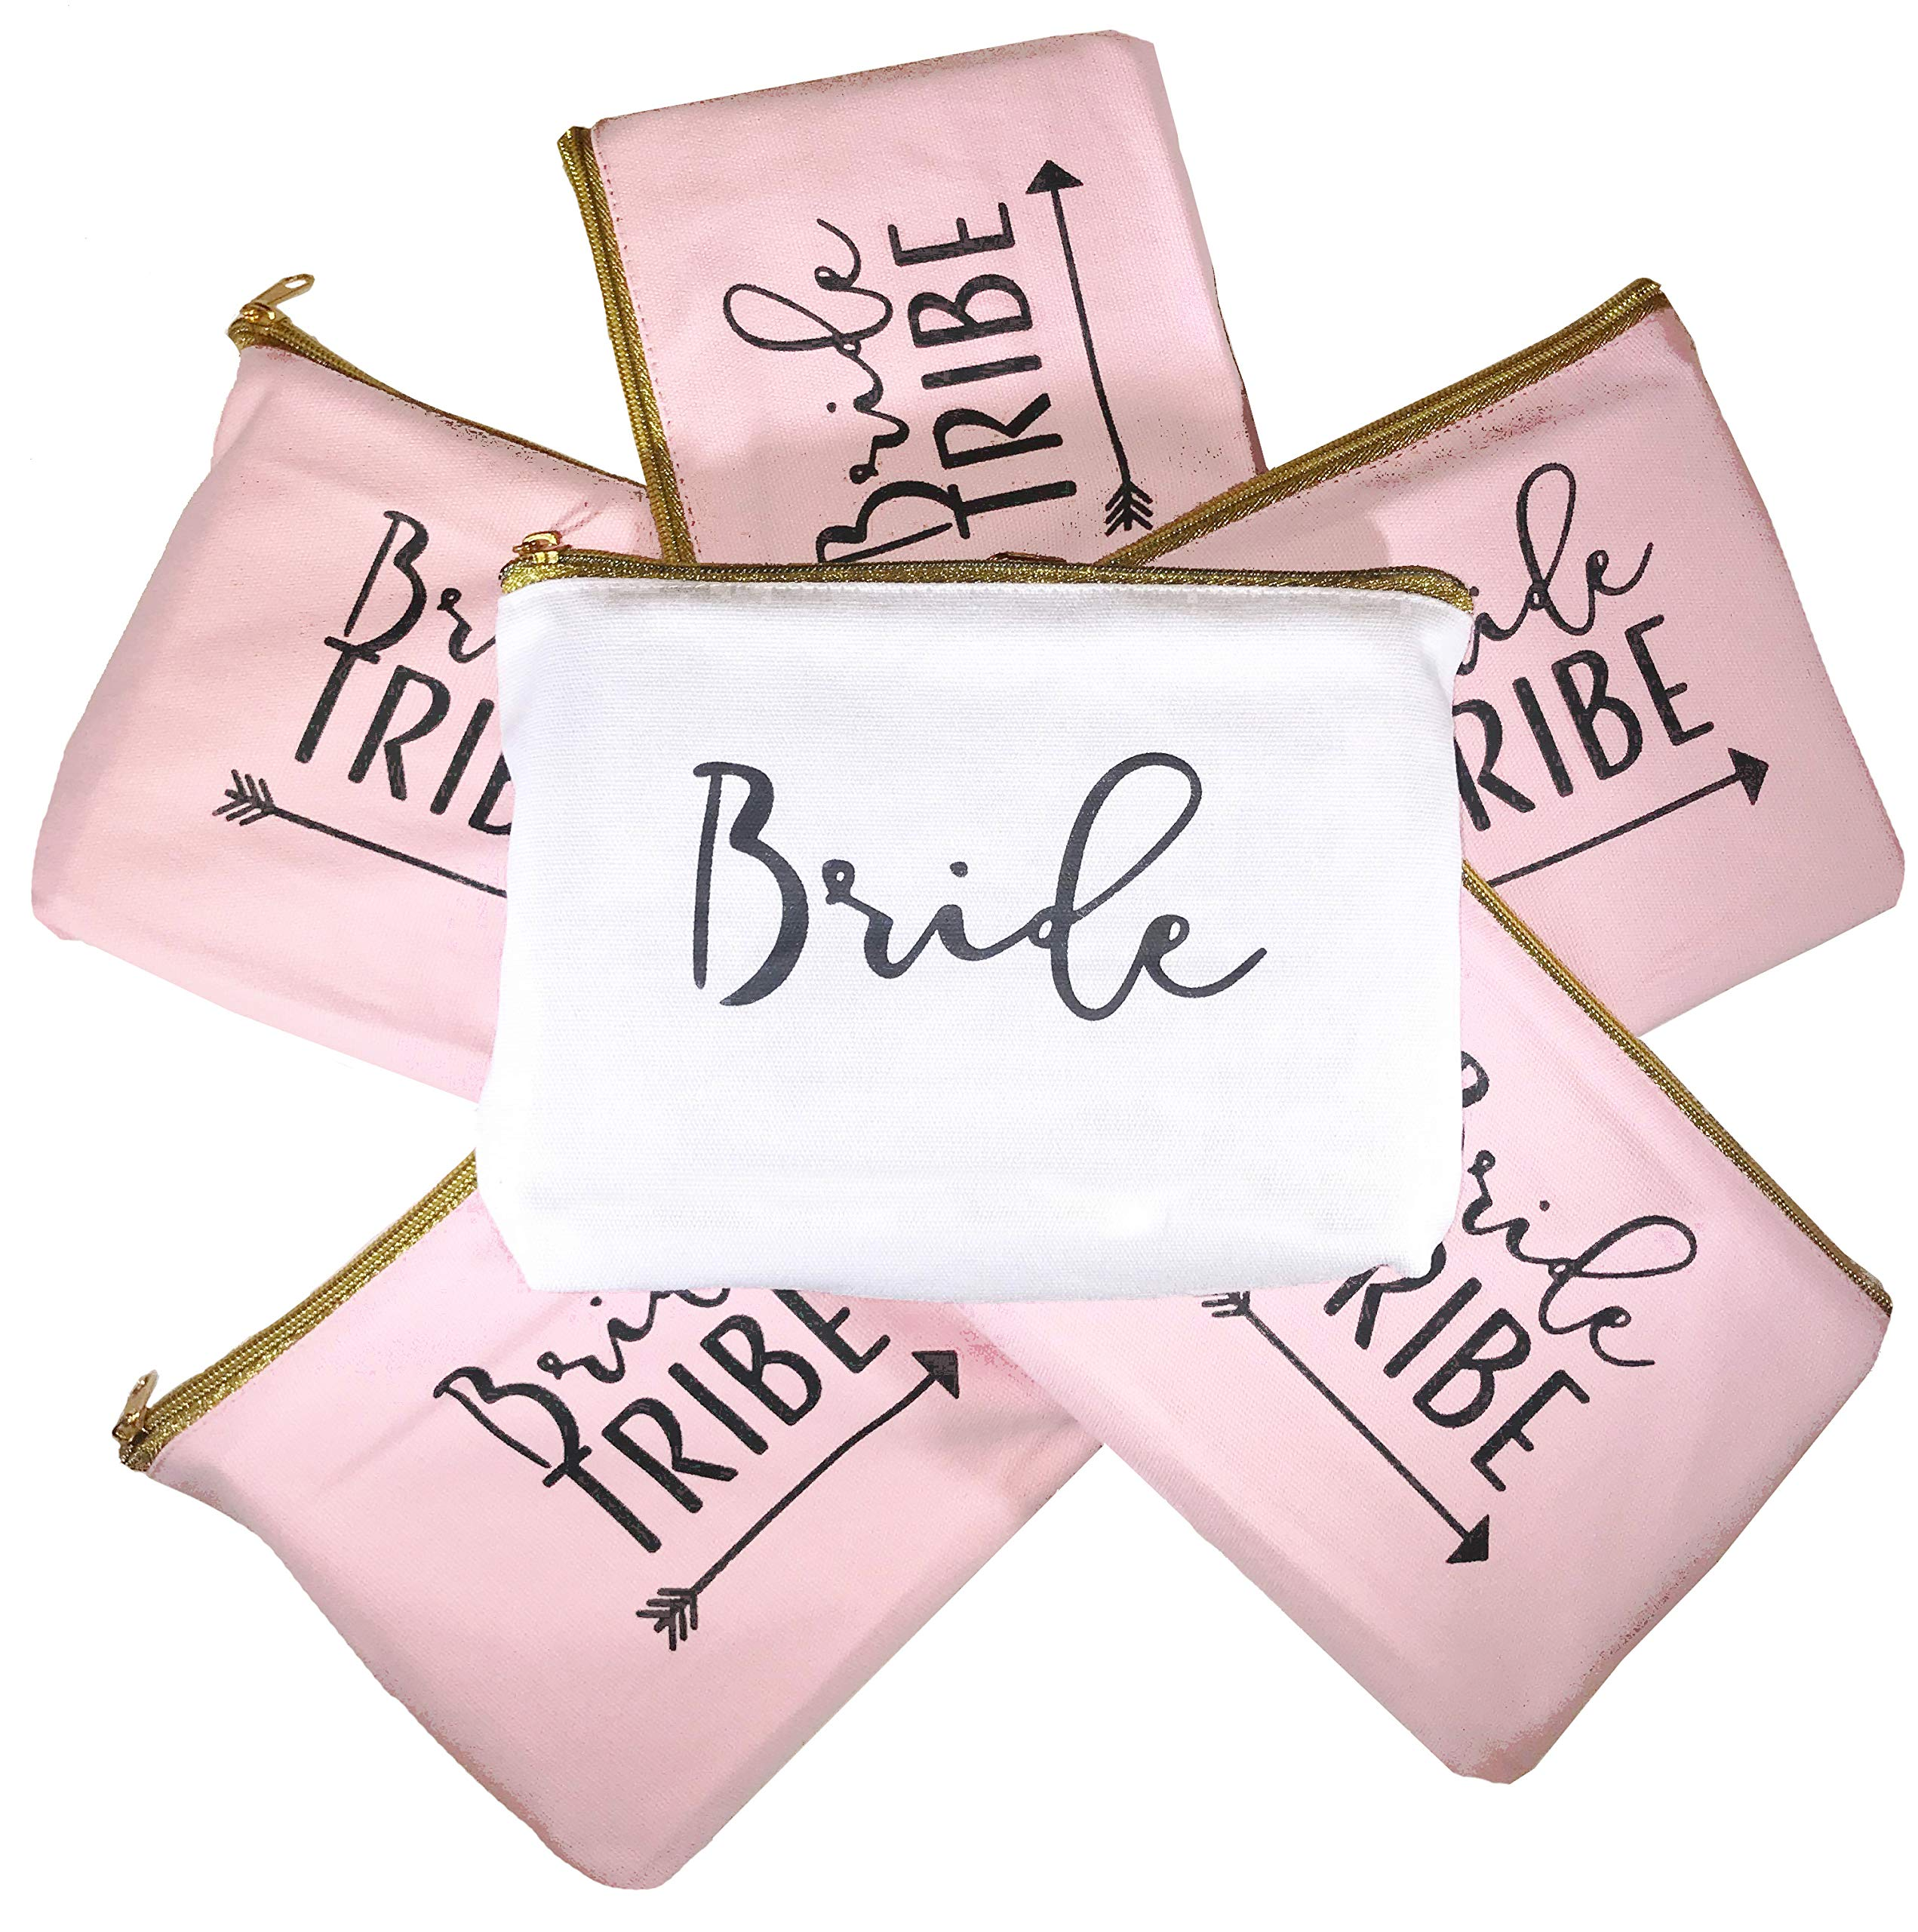 6 Piece Set   Bride Tribe Canvas Cosmetic Makeup Clutch Gifts Bag for Bridesmaid Proposal Box & Bridesmaids Bachelorette Party Favors (Rose Gold)